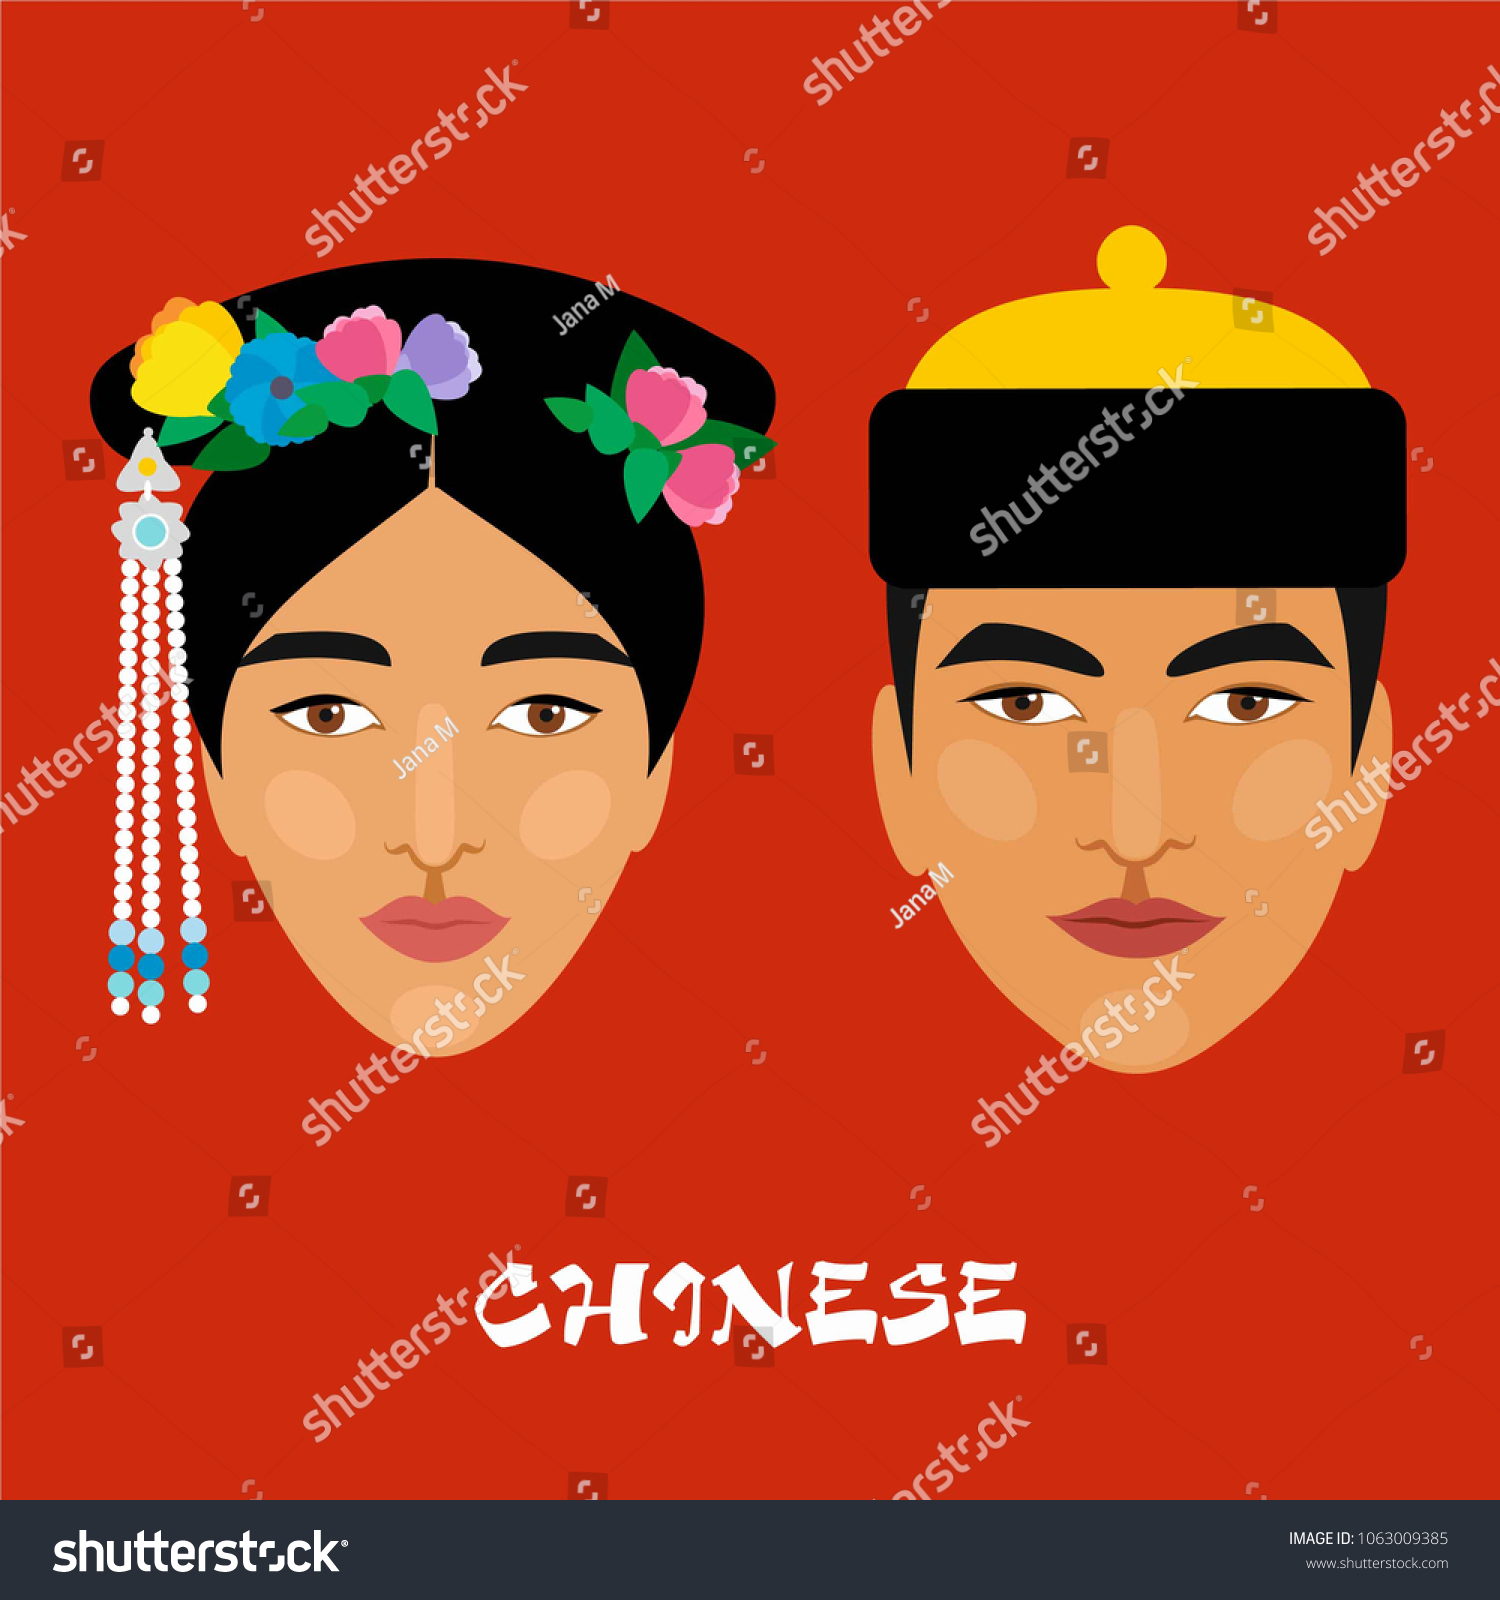 Native people of China. Portrait of a man and a woman. Vector drawing.